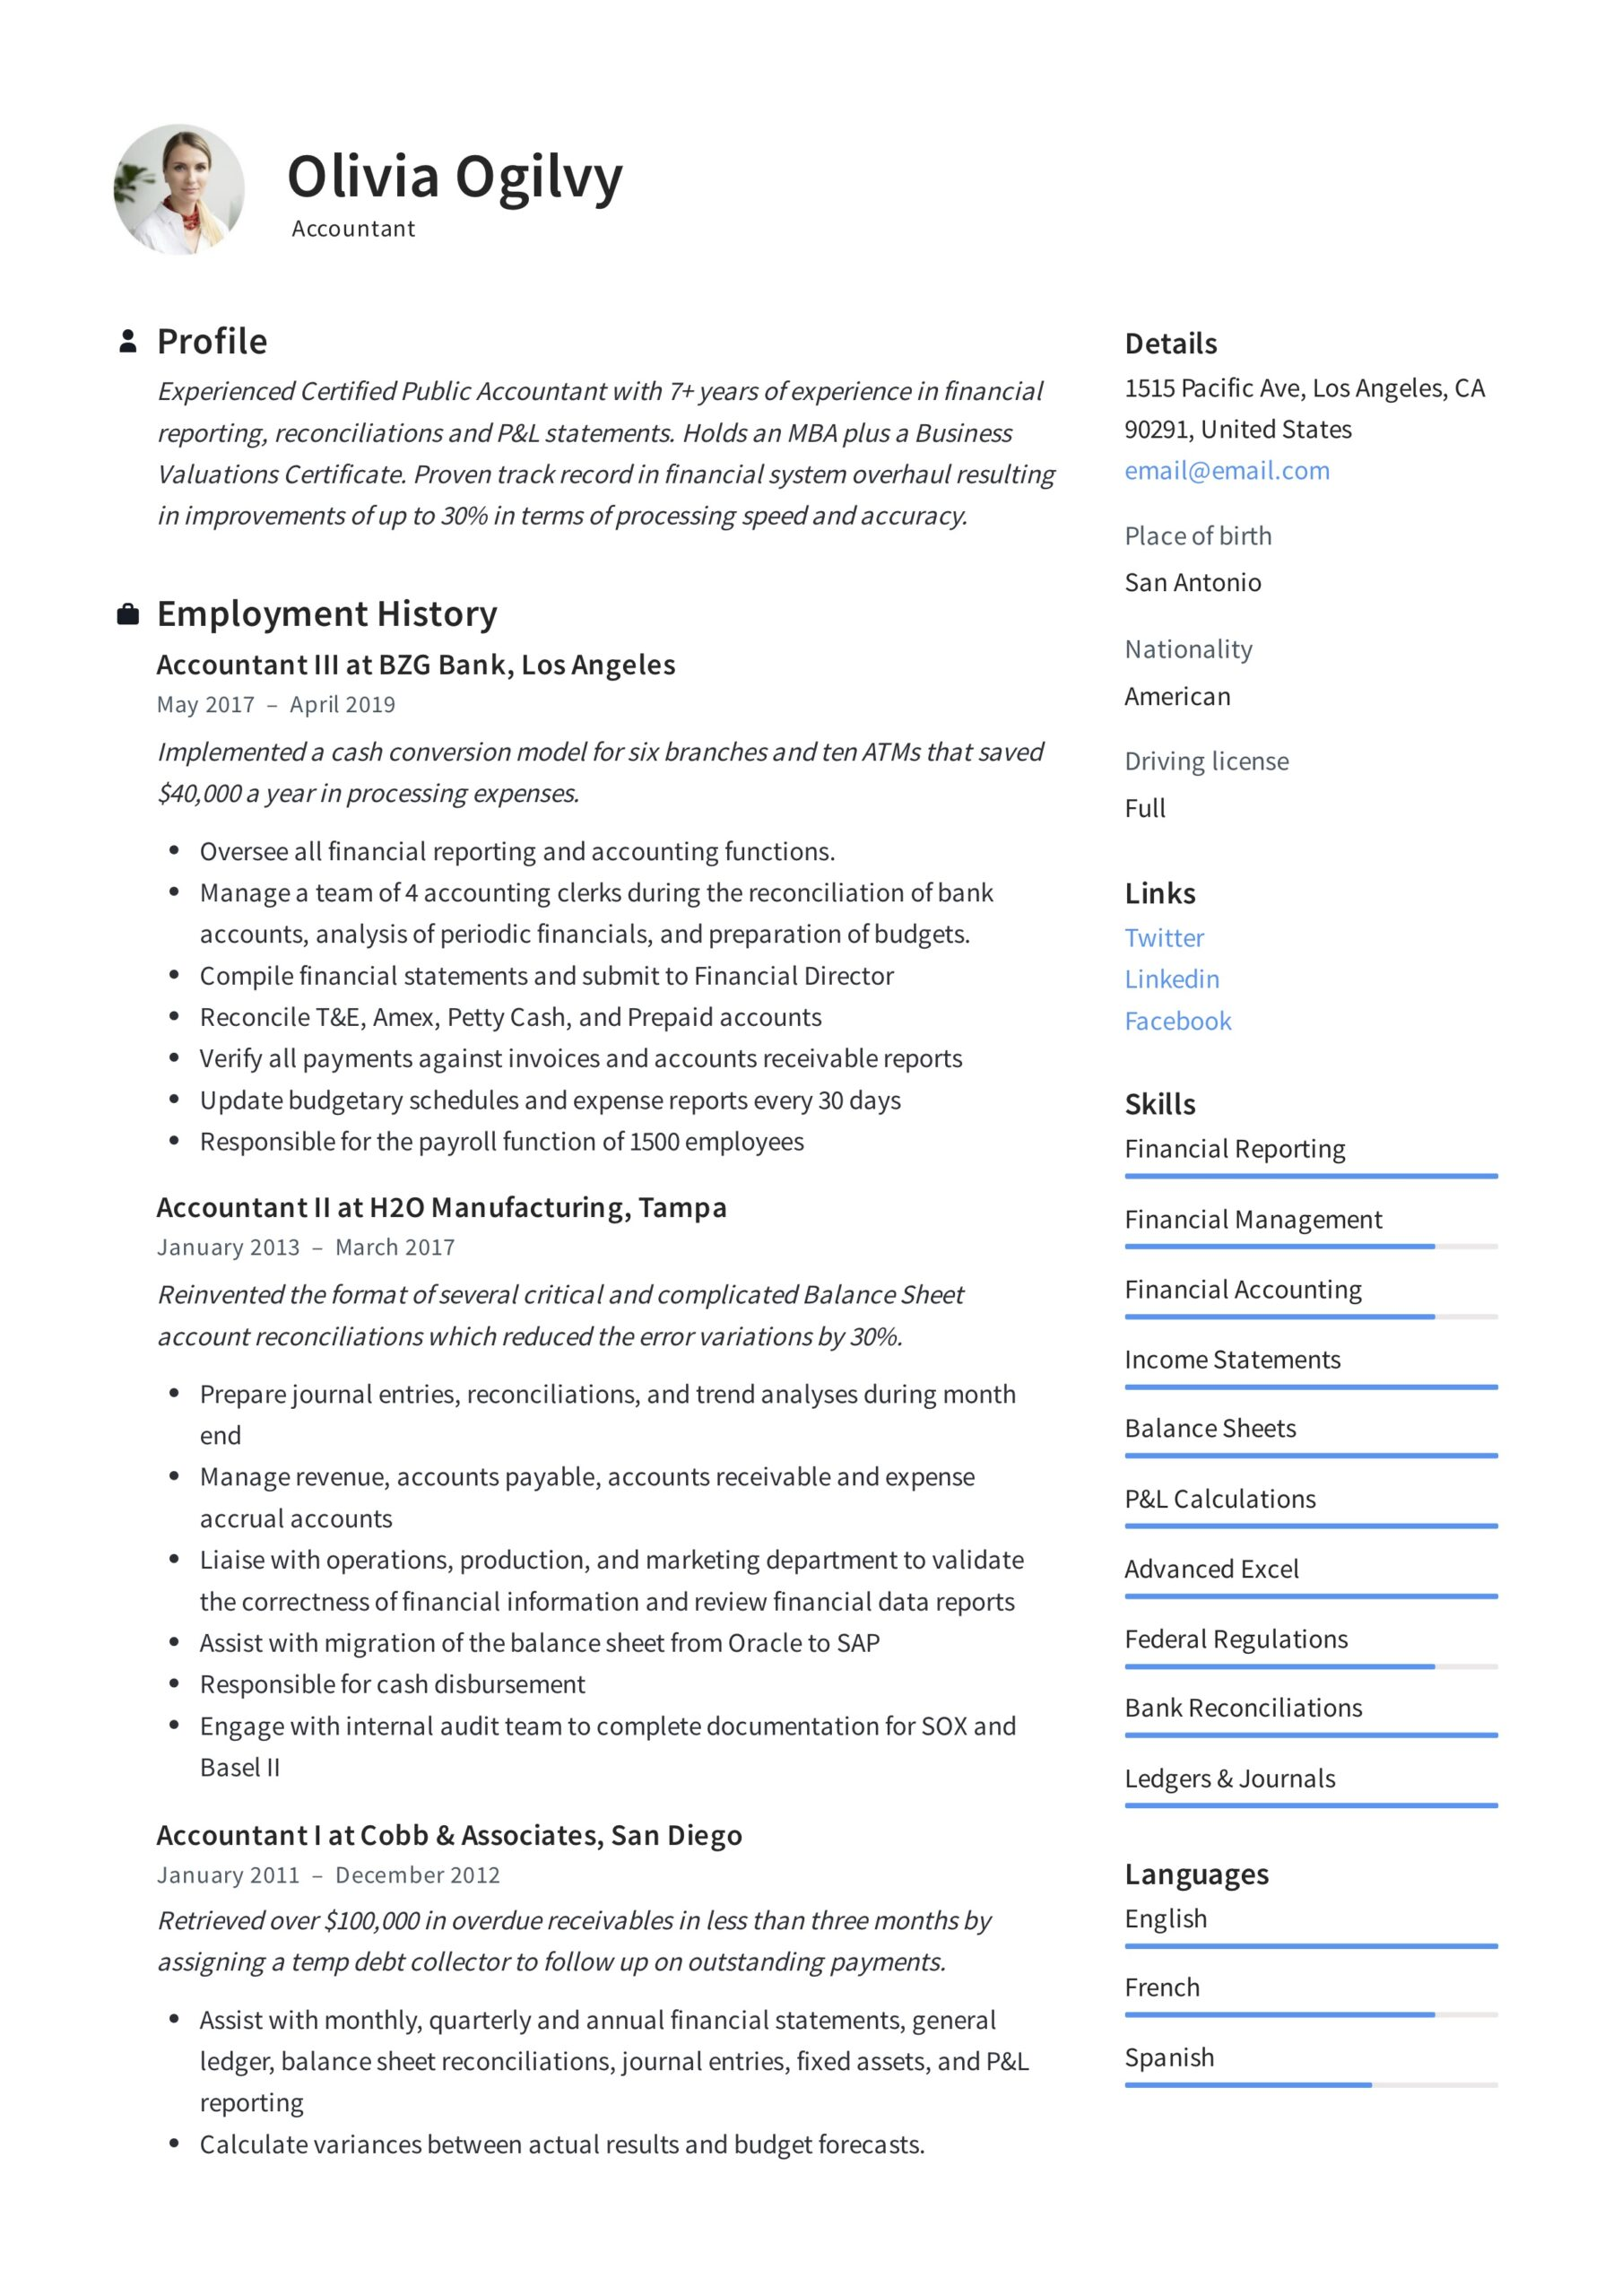 accountant resume writing guide templates pdf best for olivia ogilvy business Resume Best Resume For Accountant